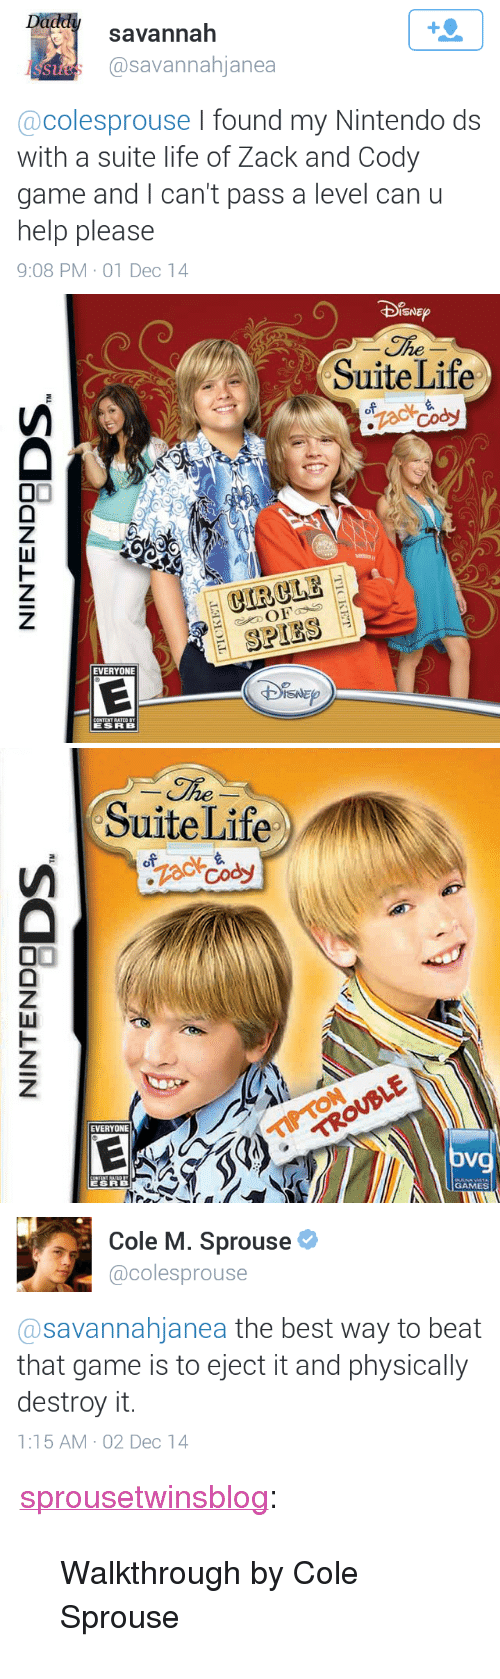 "walkthrough: savannah  @savannahjanea  St  @colesprouse I found my Nintendo ds  with a suite life of Zack and Cody  game and I can't pass a level can u  help please  9:08 PM-01 Dec 14   SNE  SuiteLife  CIRCLE  SPIES  EVERYONE   he  SuiteLife  EVERYONE  oV  GAMES   Cole M. Sprouse  @colesprouse  @savannahjanea the best way to beat  that game is to eject it and physically  destroy it.  1:15 AM-02 Dec 14 <p><a class=""tumblr_blog"" href=""http://sprousetwinsblog.tumblr.com/post/104158242380/walkthrough-by-cole-sprouse"" target=""_blank"">sprousetwinsblog</a>:</p> <blockquote> <p>Walkthrough by Cole Sprouse</p> </blockquote>"